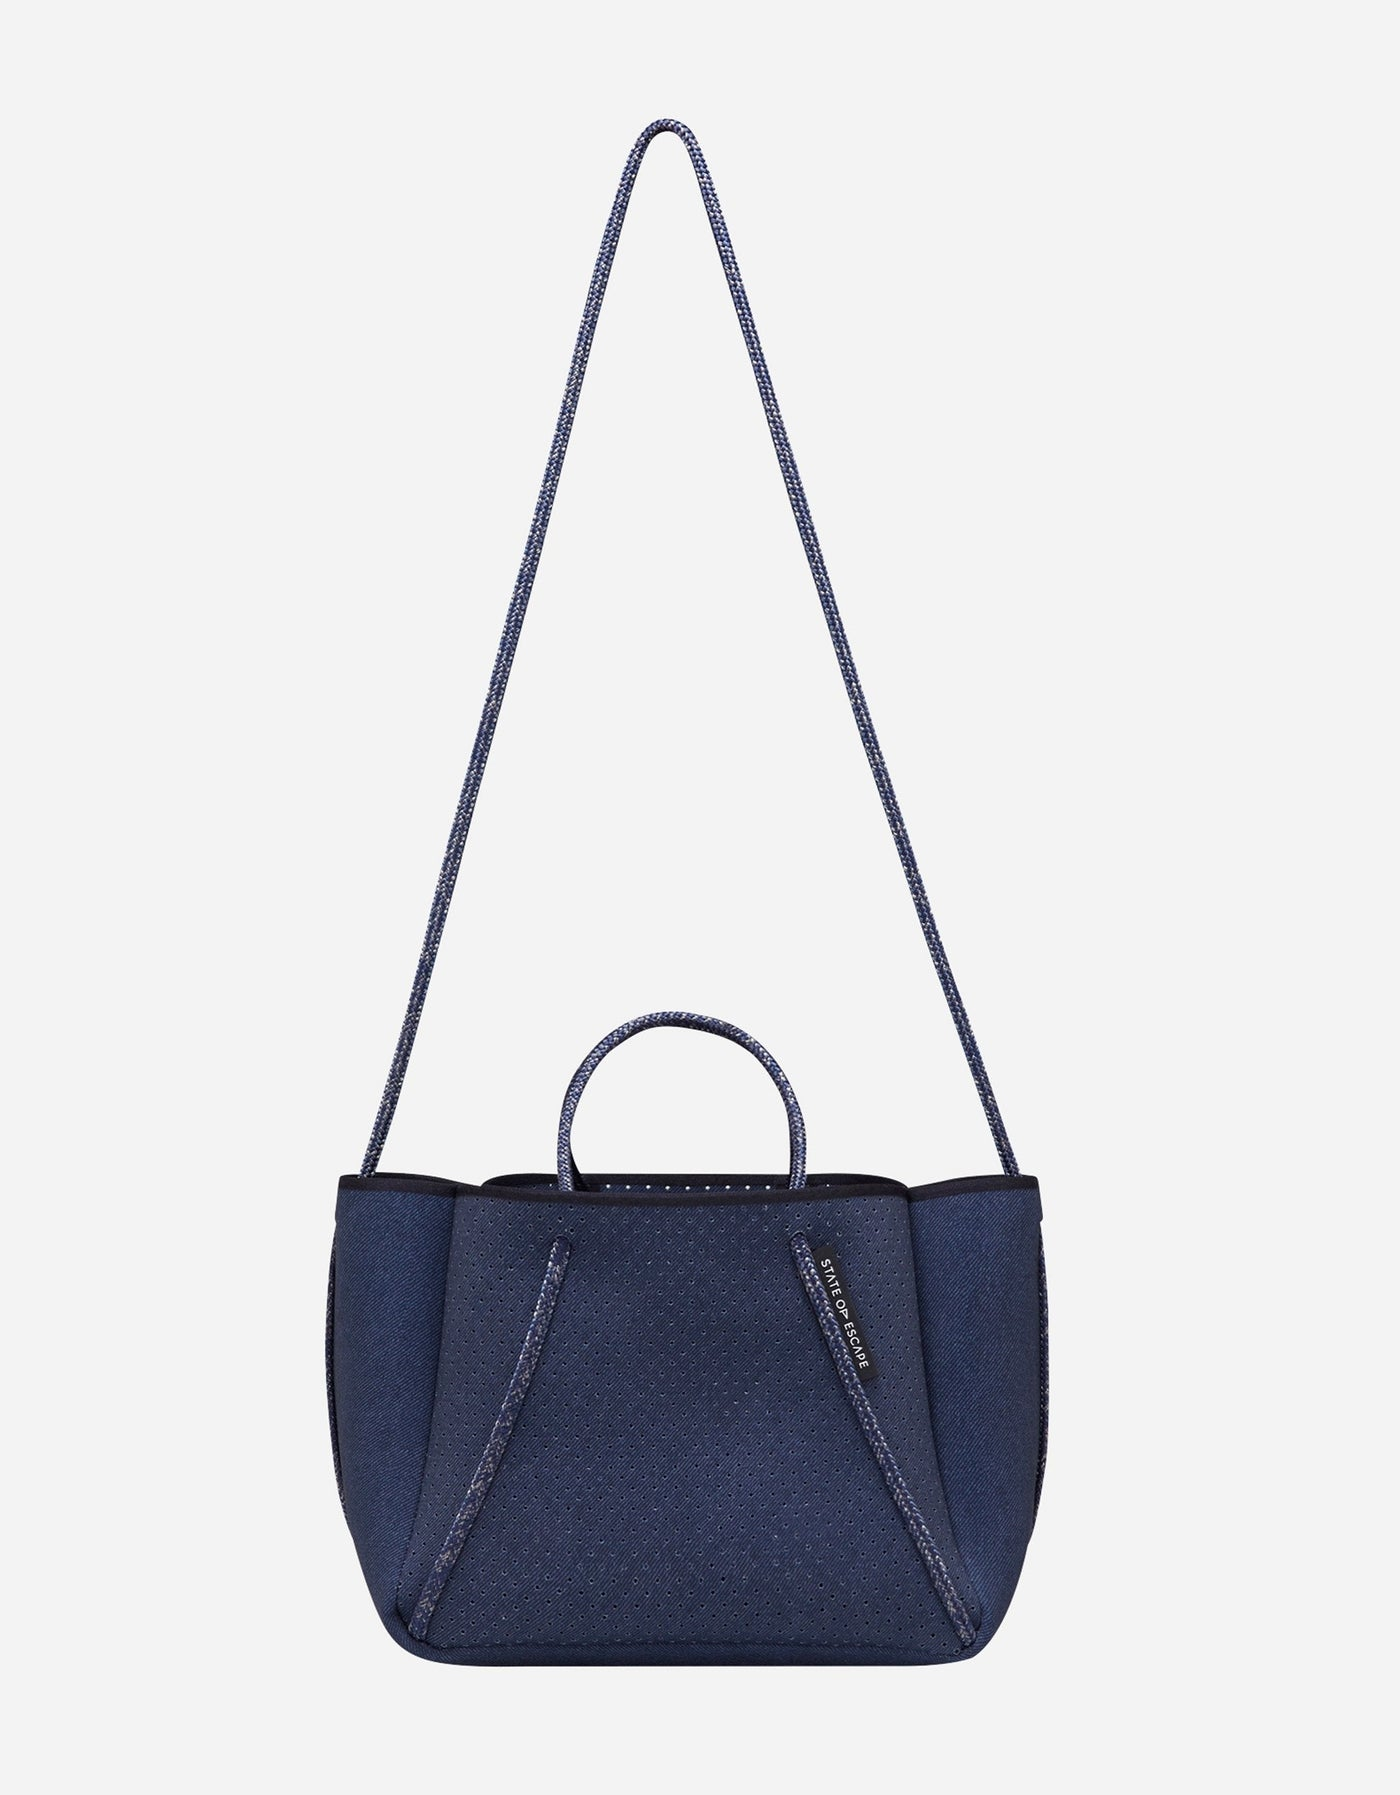 Petite guise neoprene tote bag in dark denim print